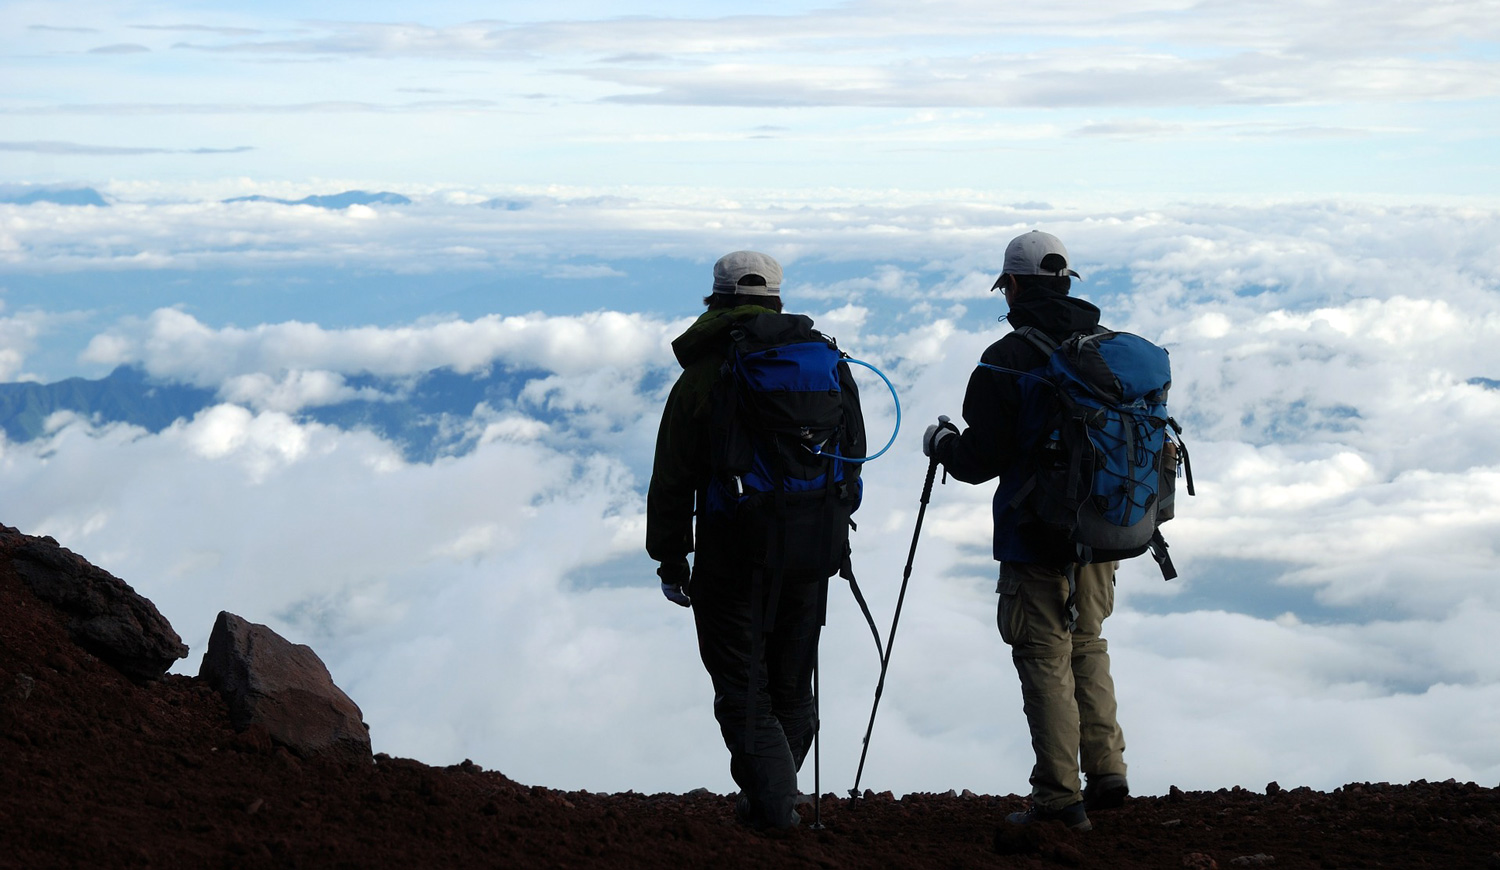 Hiking above the clouds on Mt. Fuji. Image:     Tuan Hung Nguyen